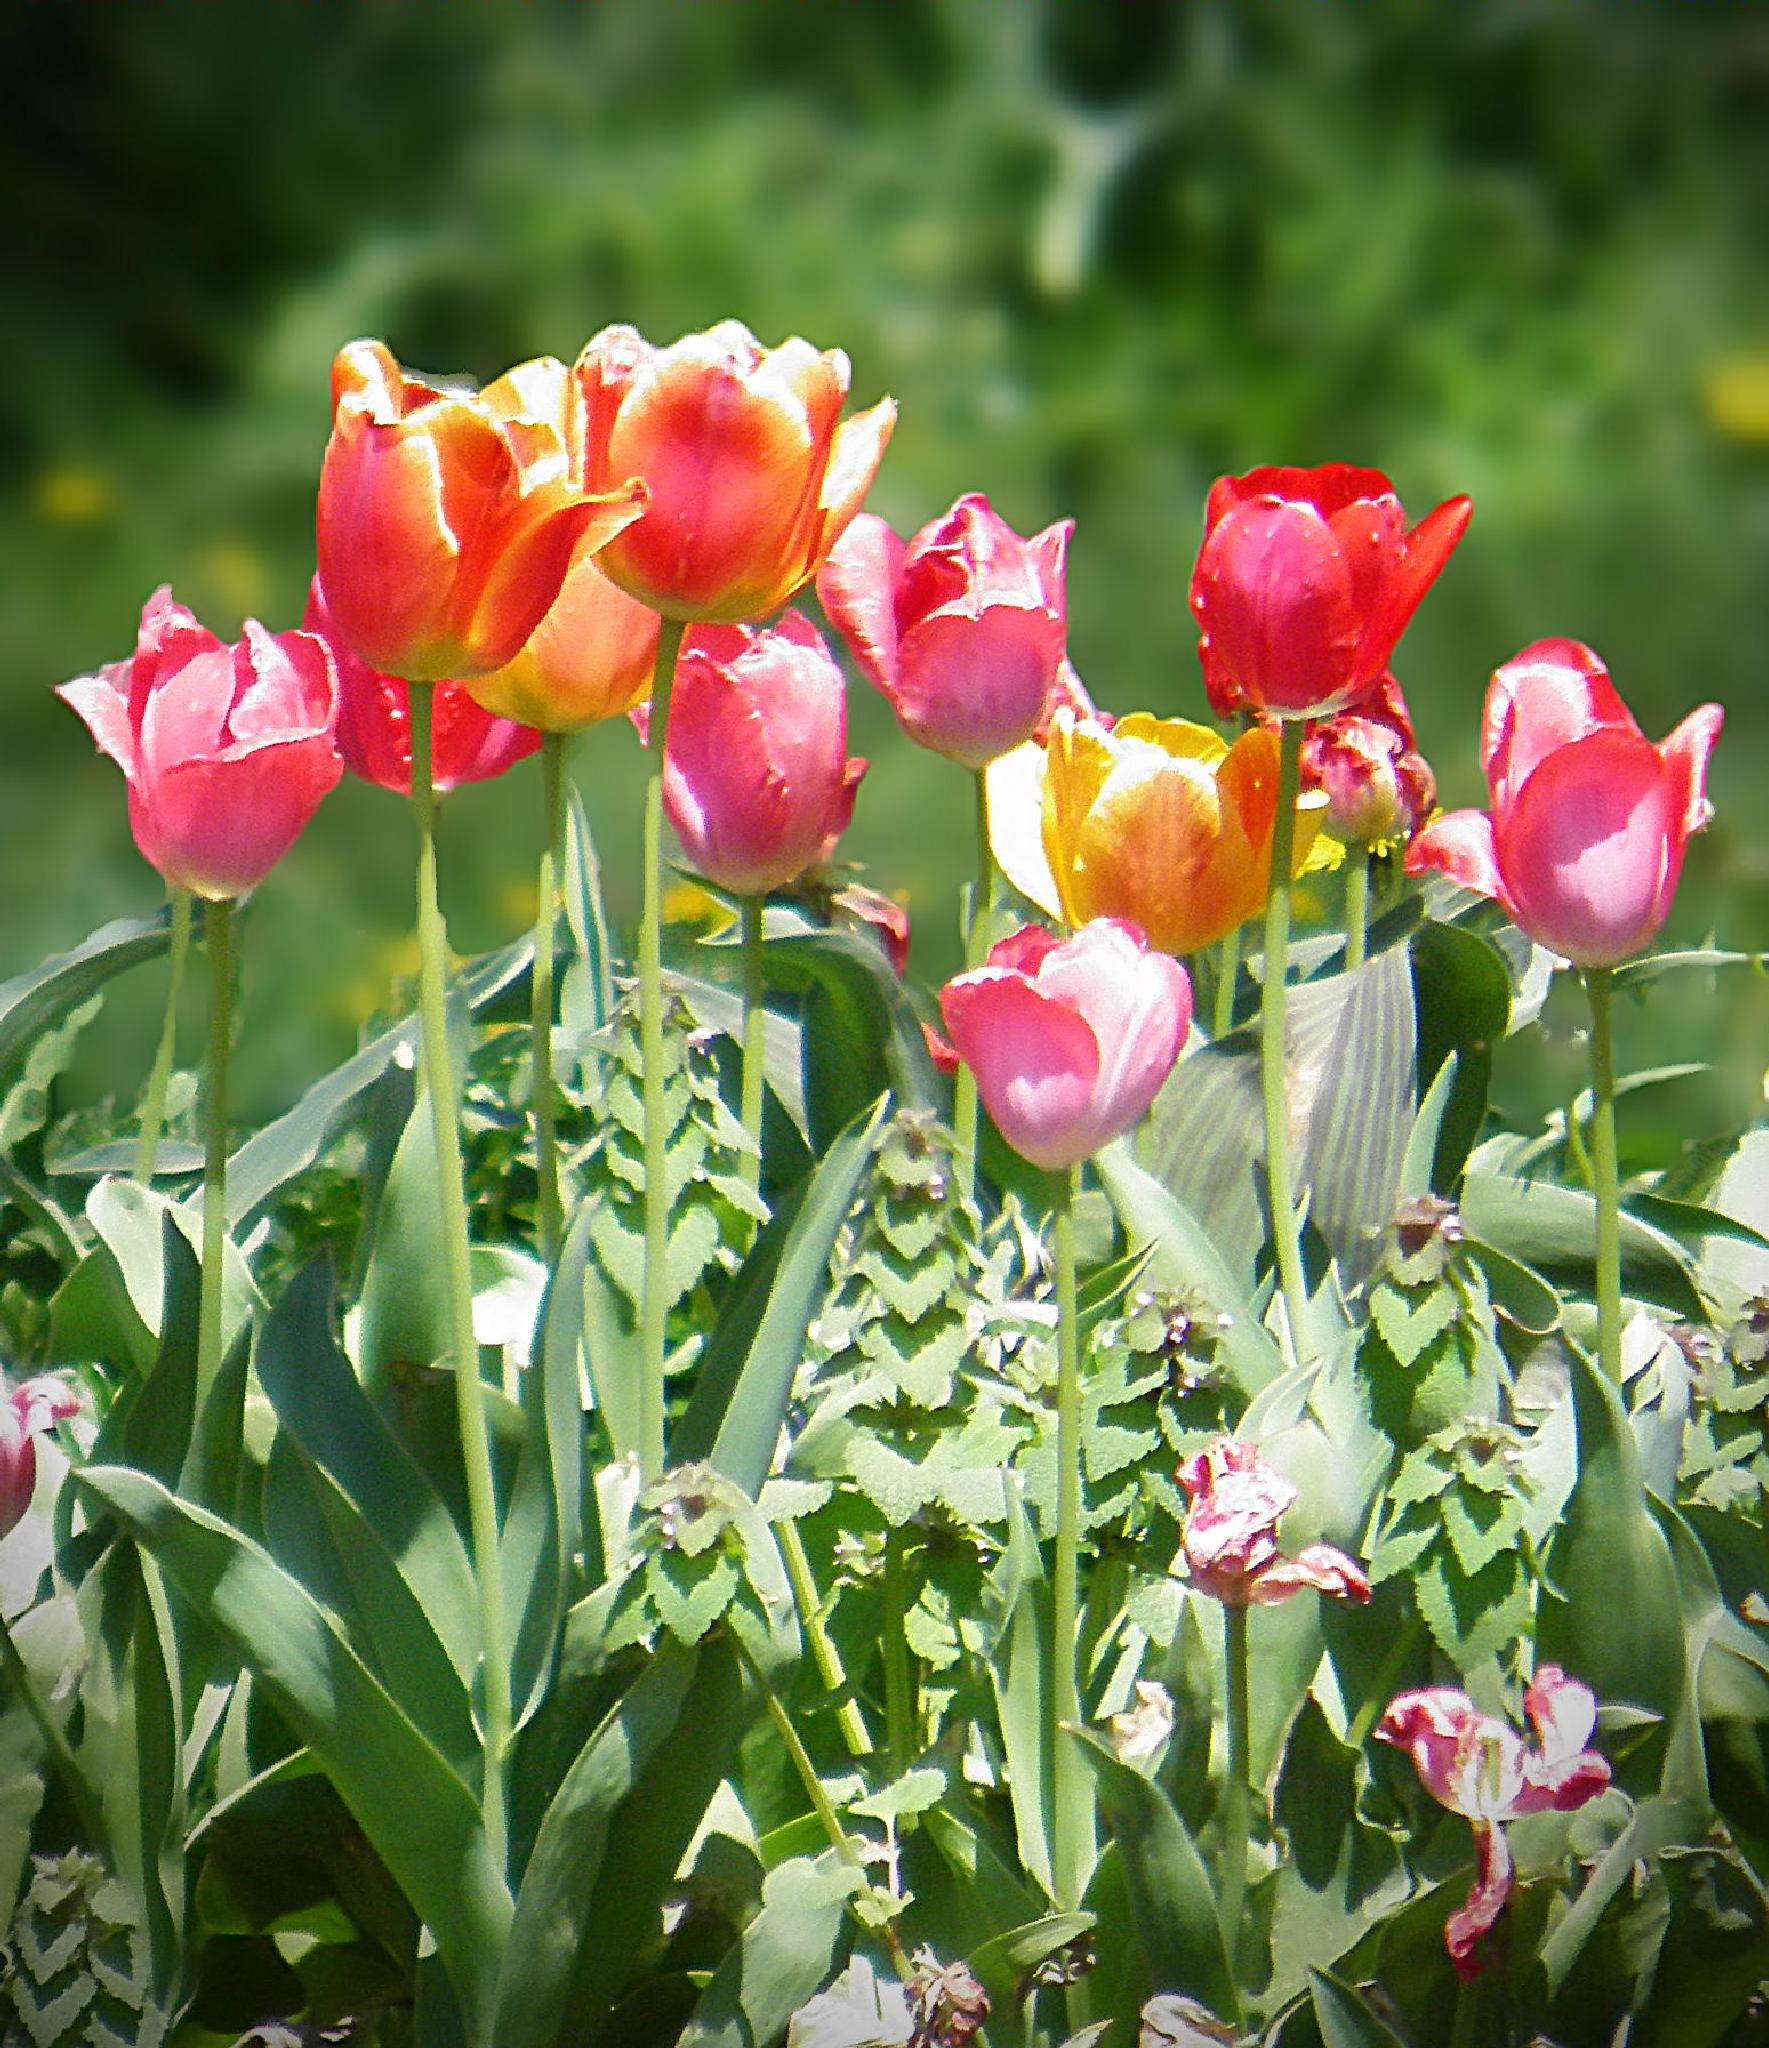 Colorful Tulips by Darlene Eastin